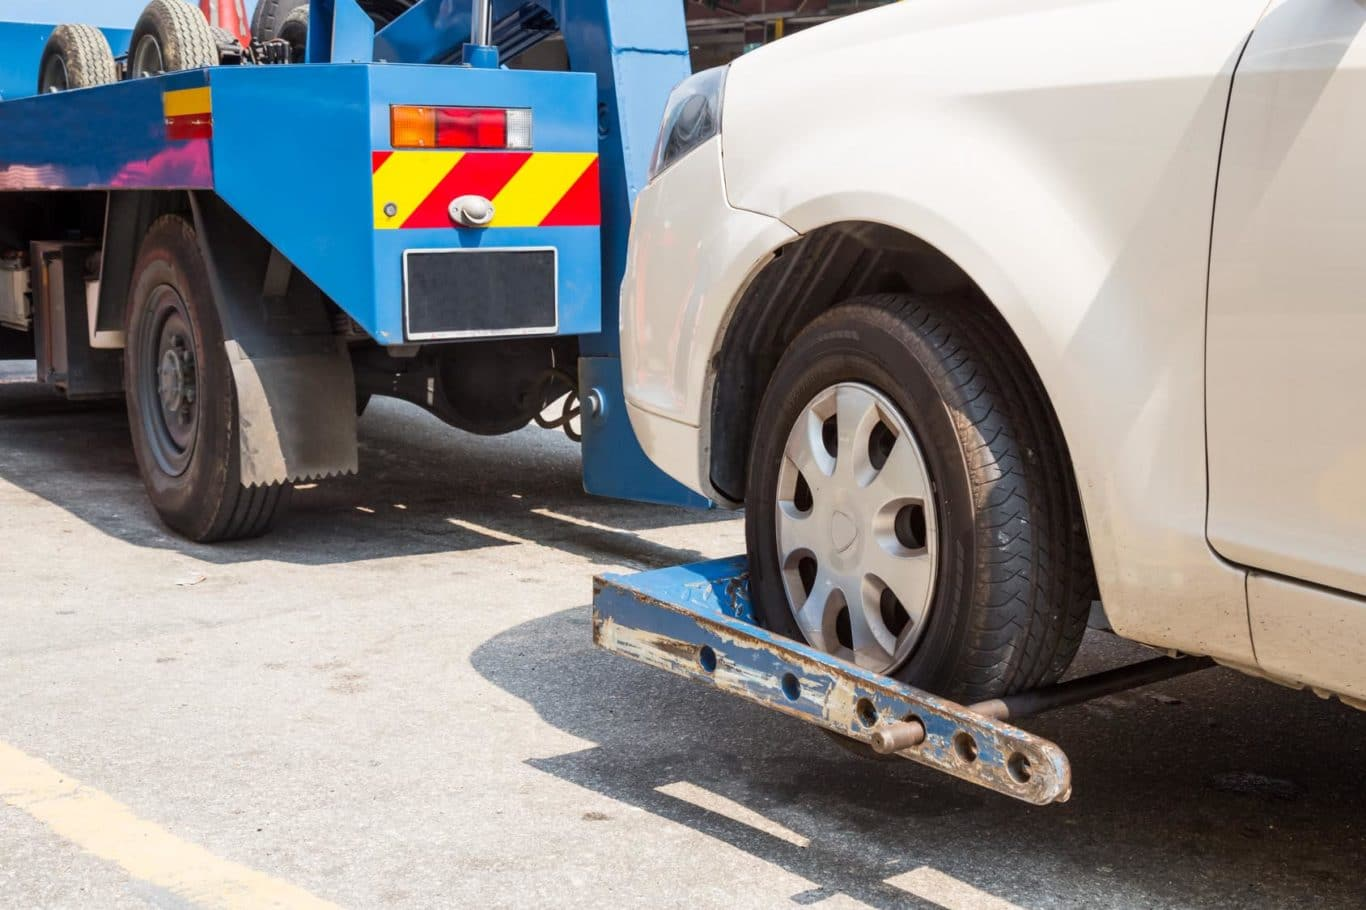 Dublin 24 (D24) South Dublin expert Breakdown Assistance services